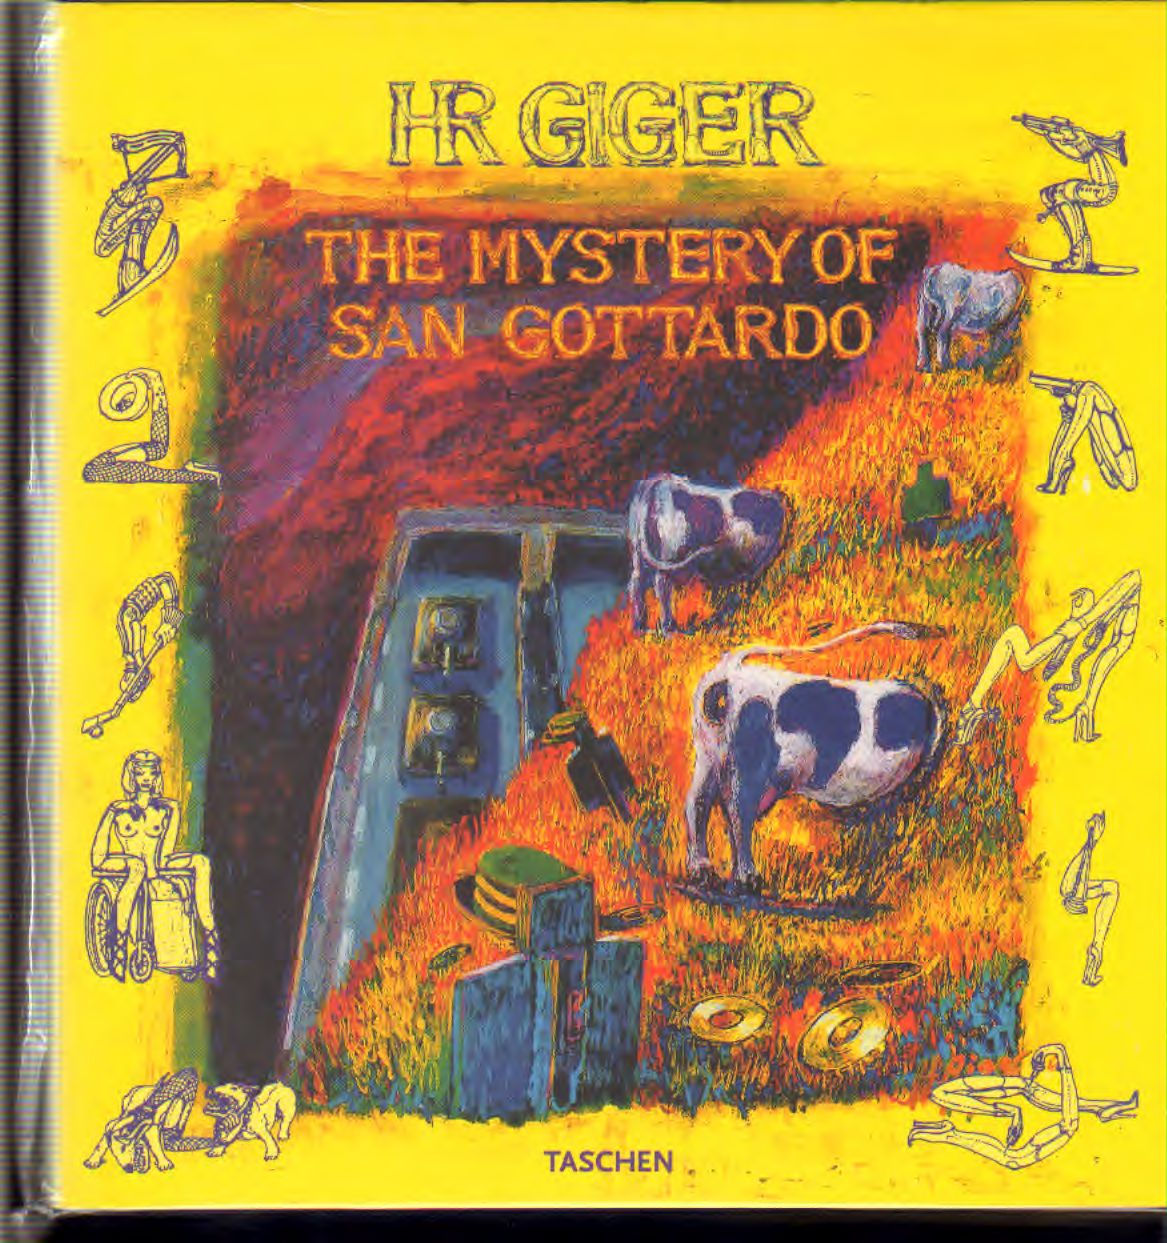 Giger - HR Giger – the mystery of San Gottardo